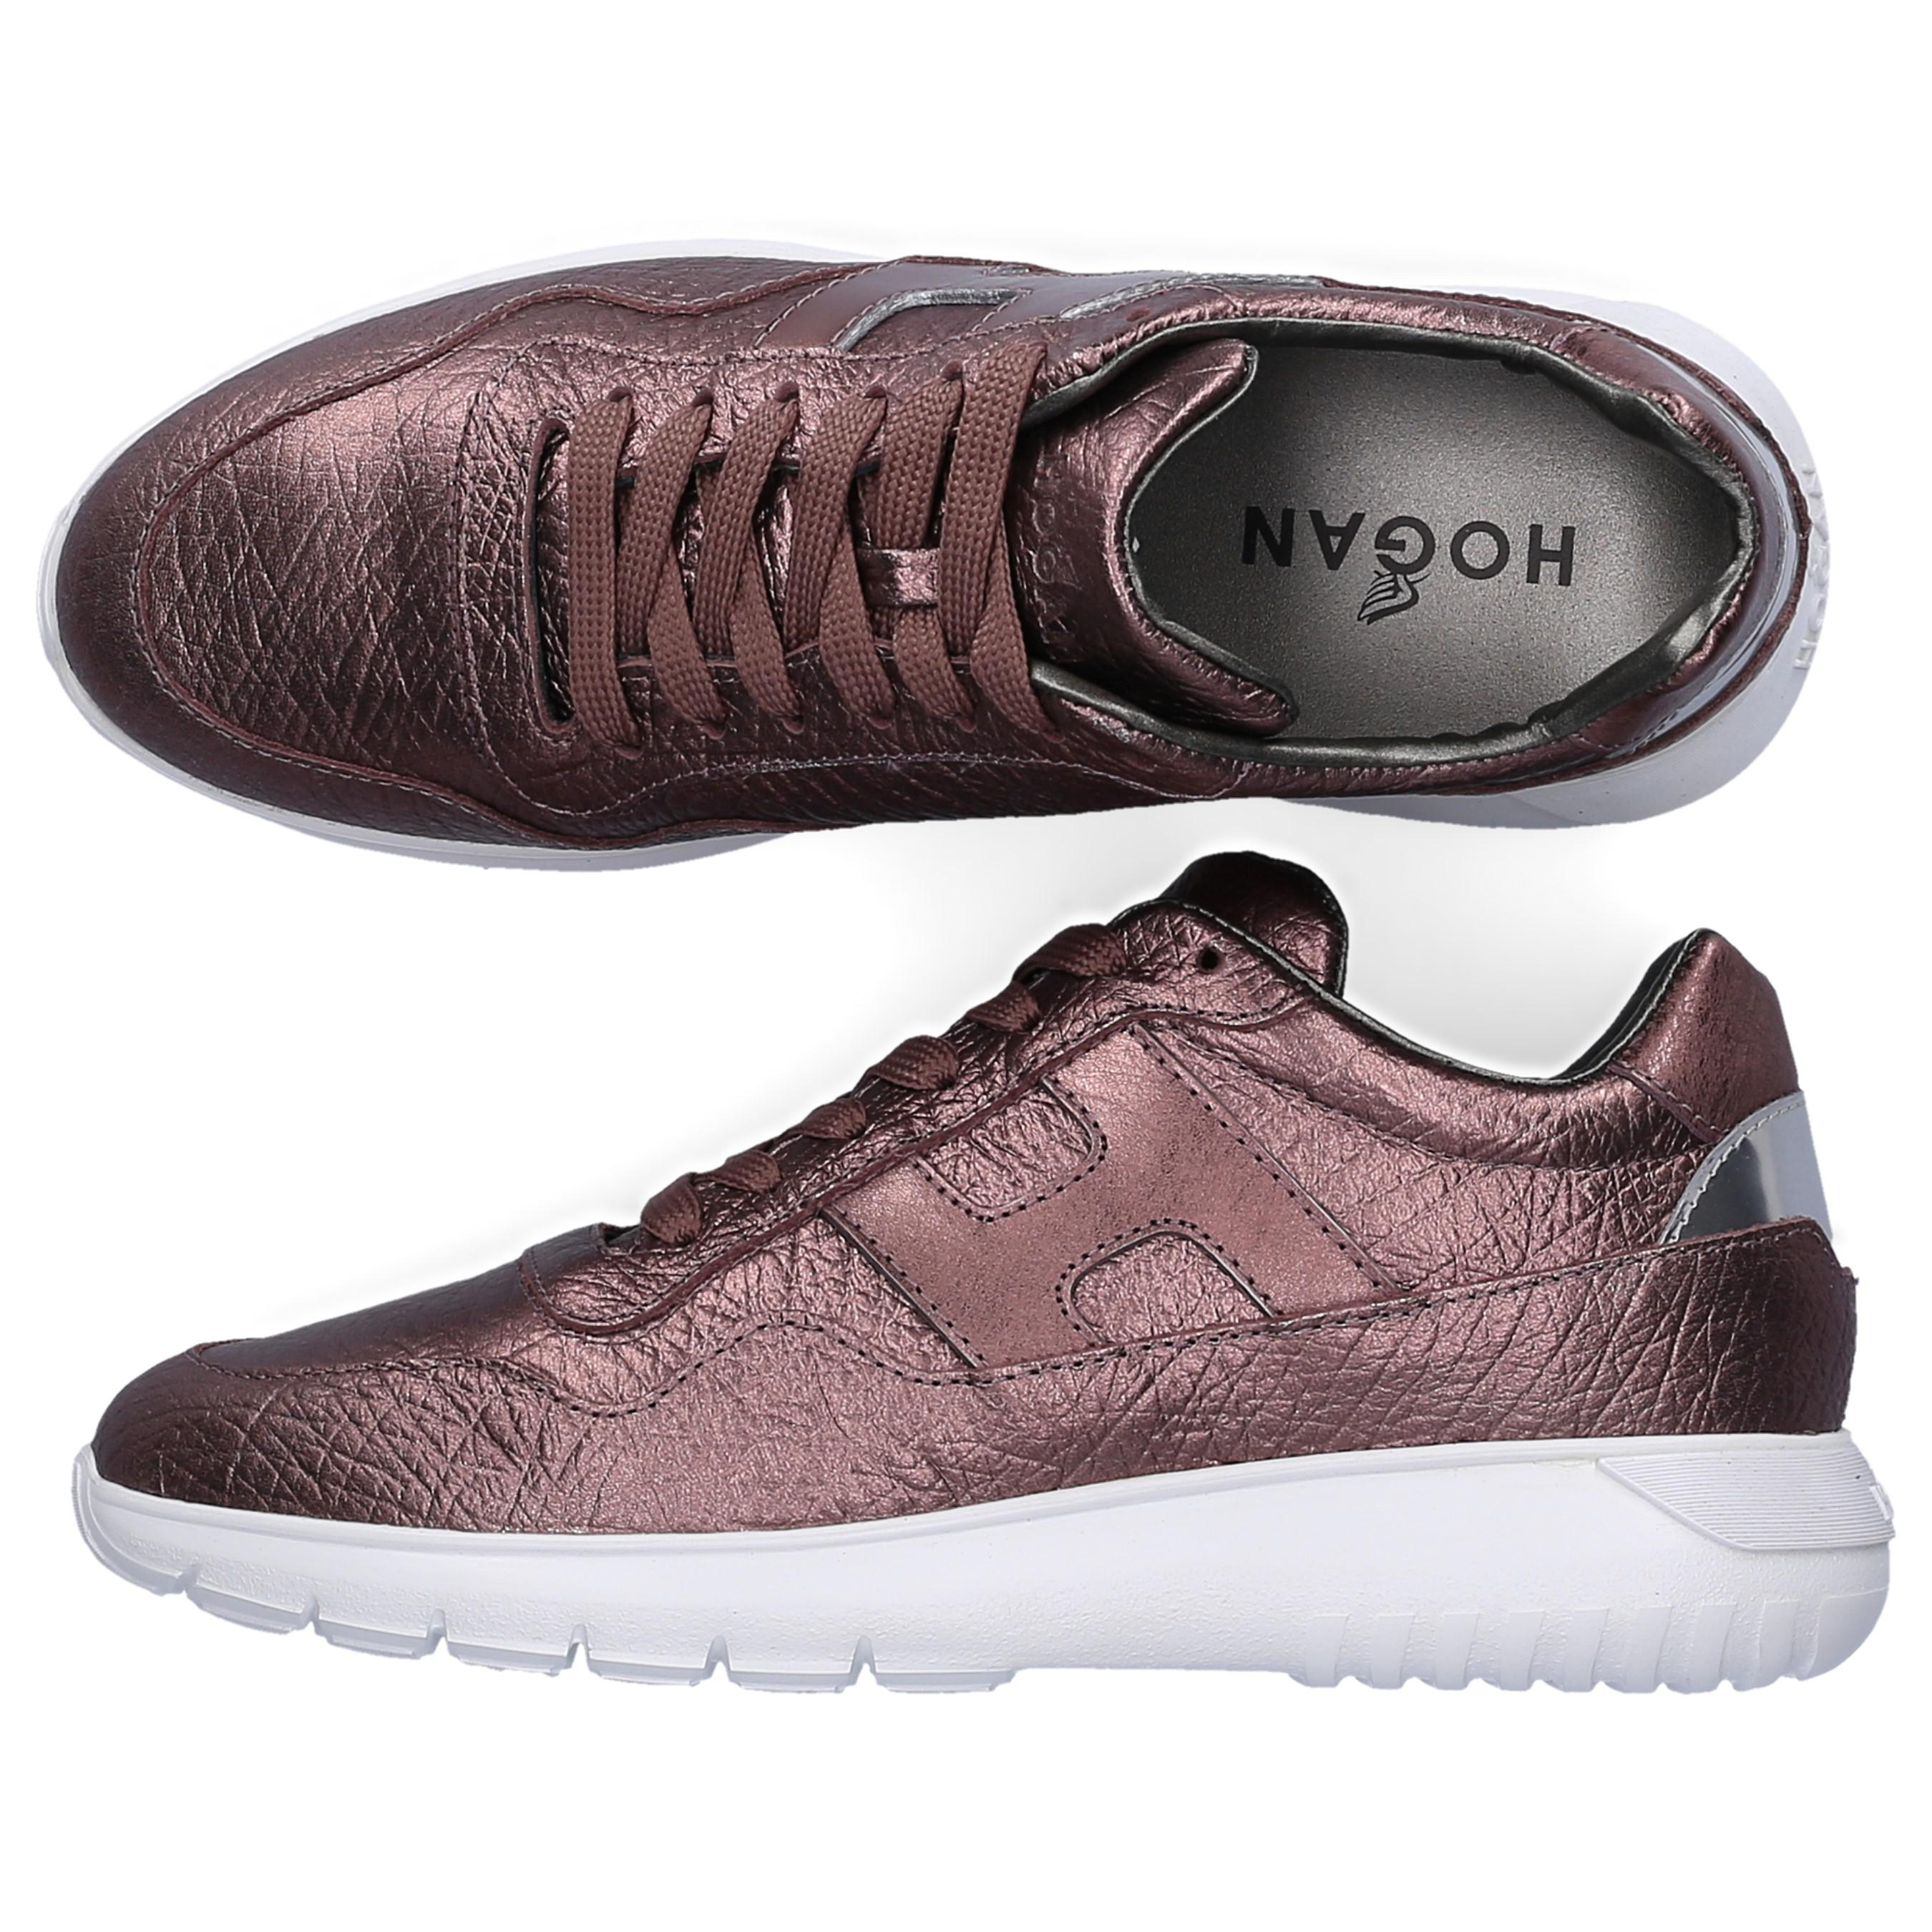 Hogan Leather Low-top Sneakers H371 Logo Bordeaux in Red - Lyst